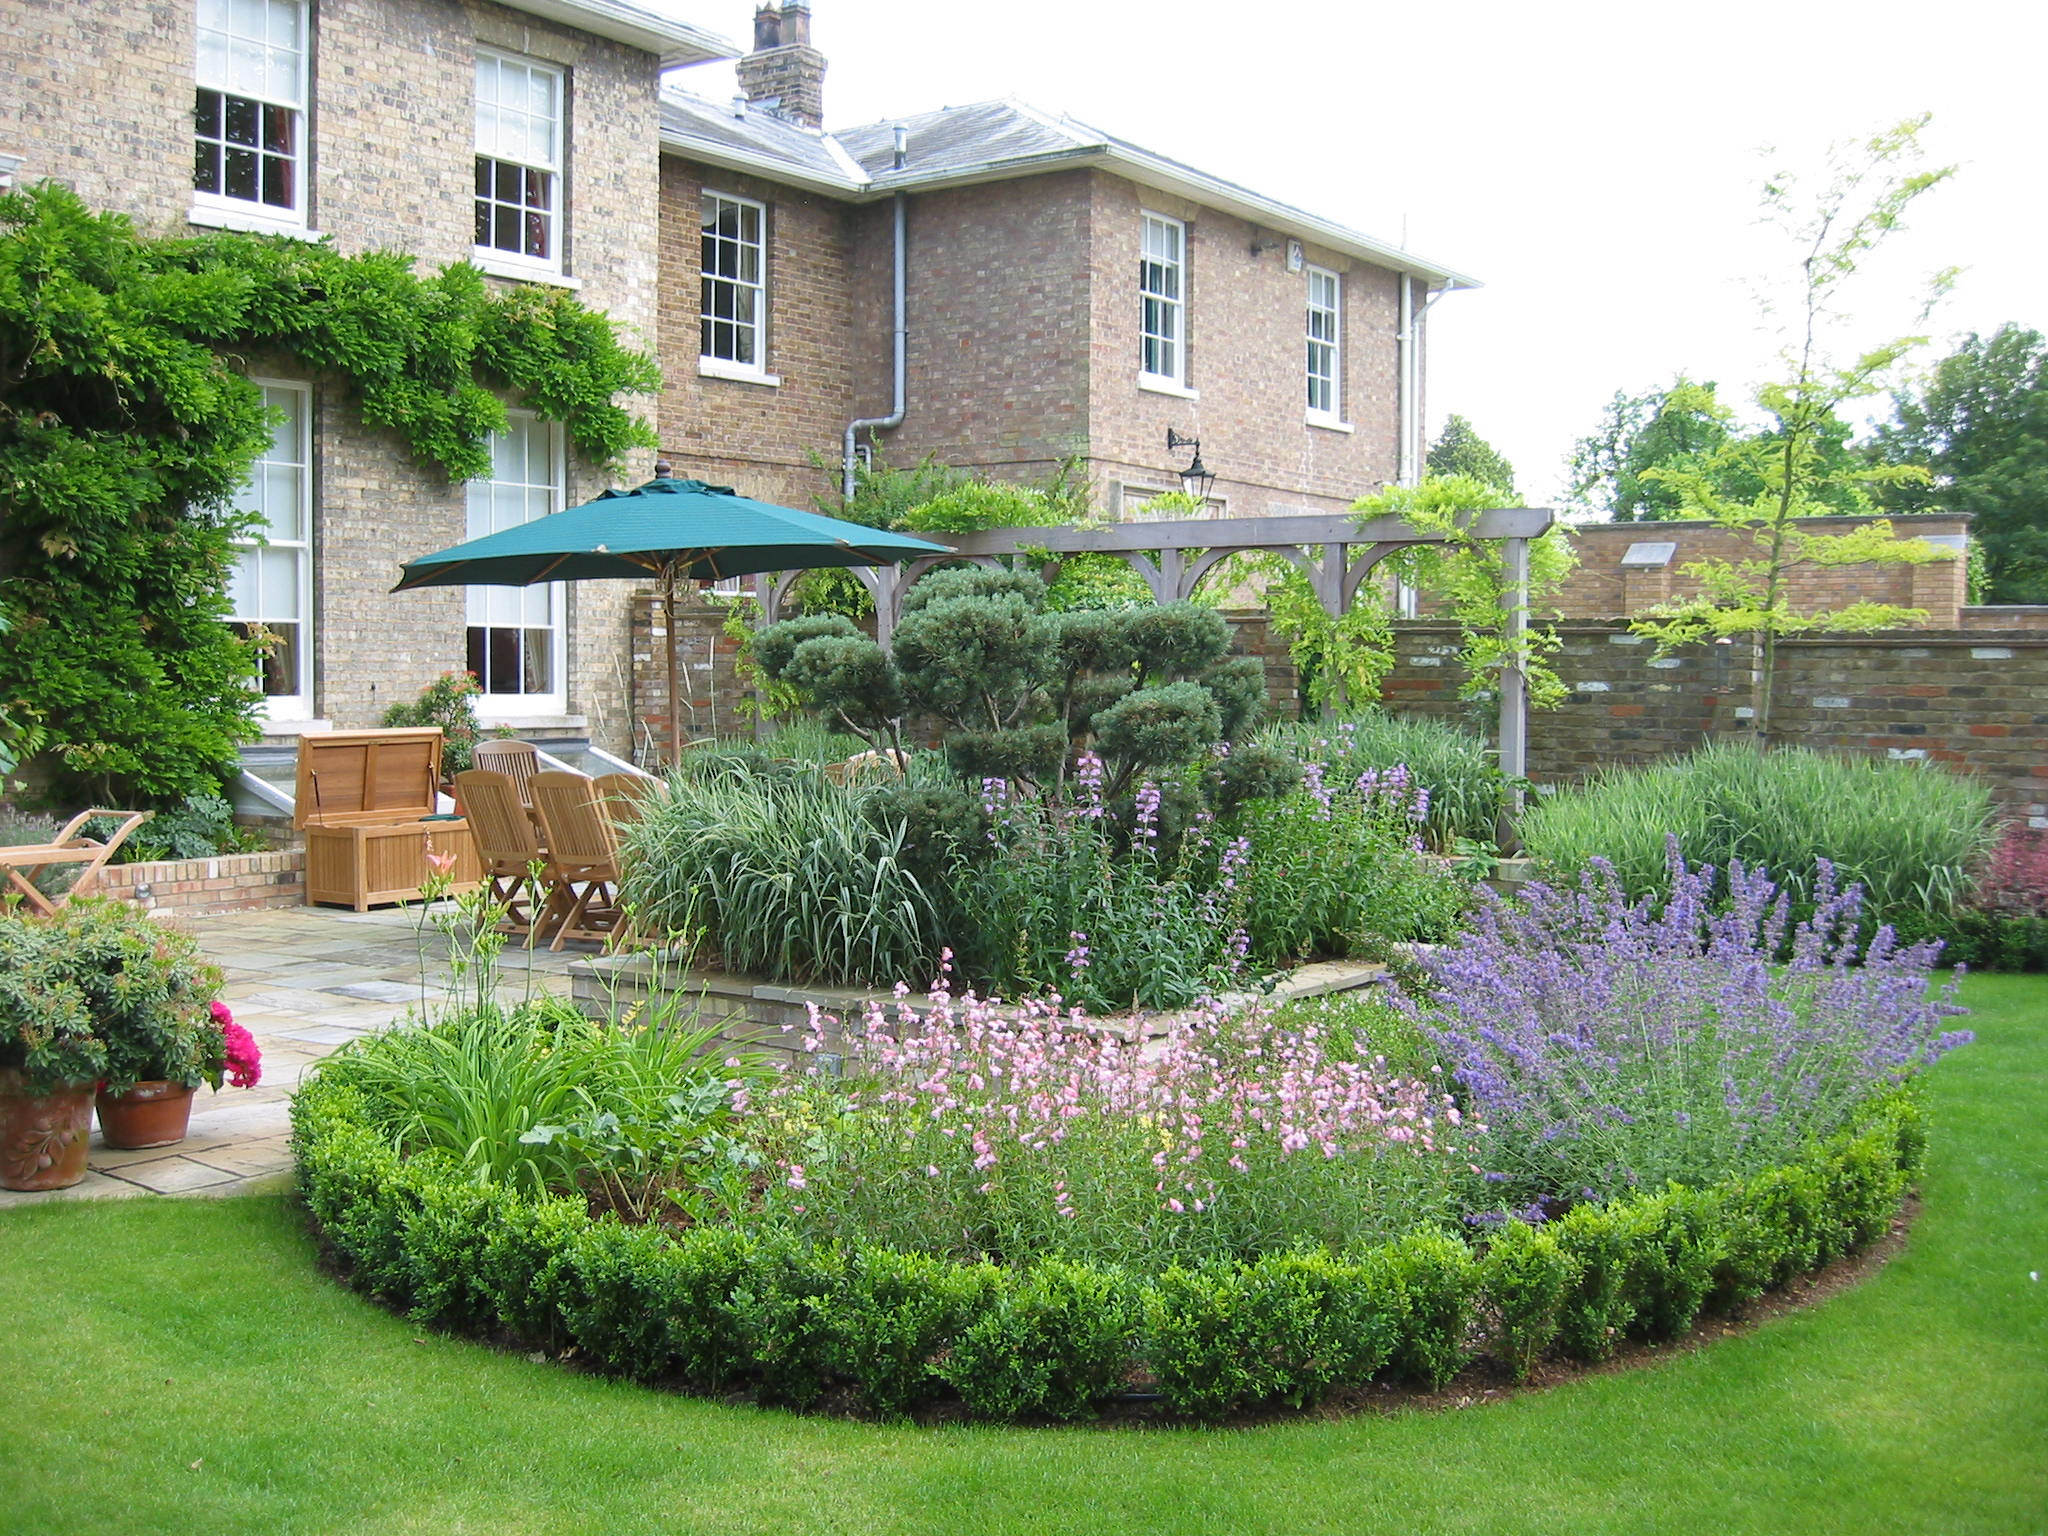 Best landscape designs to have a beautiful garden cool for Best garden design